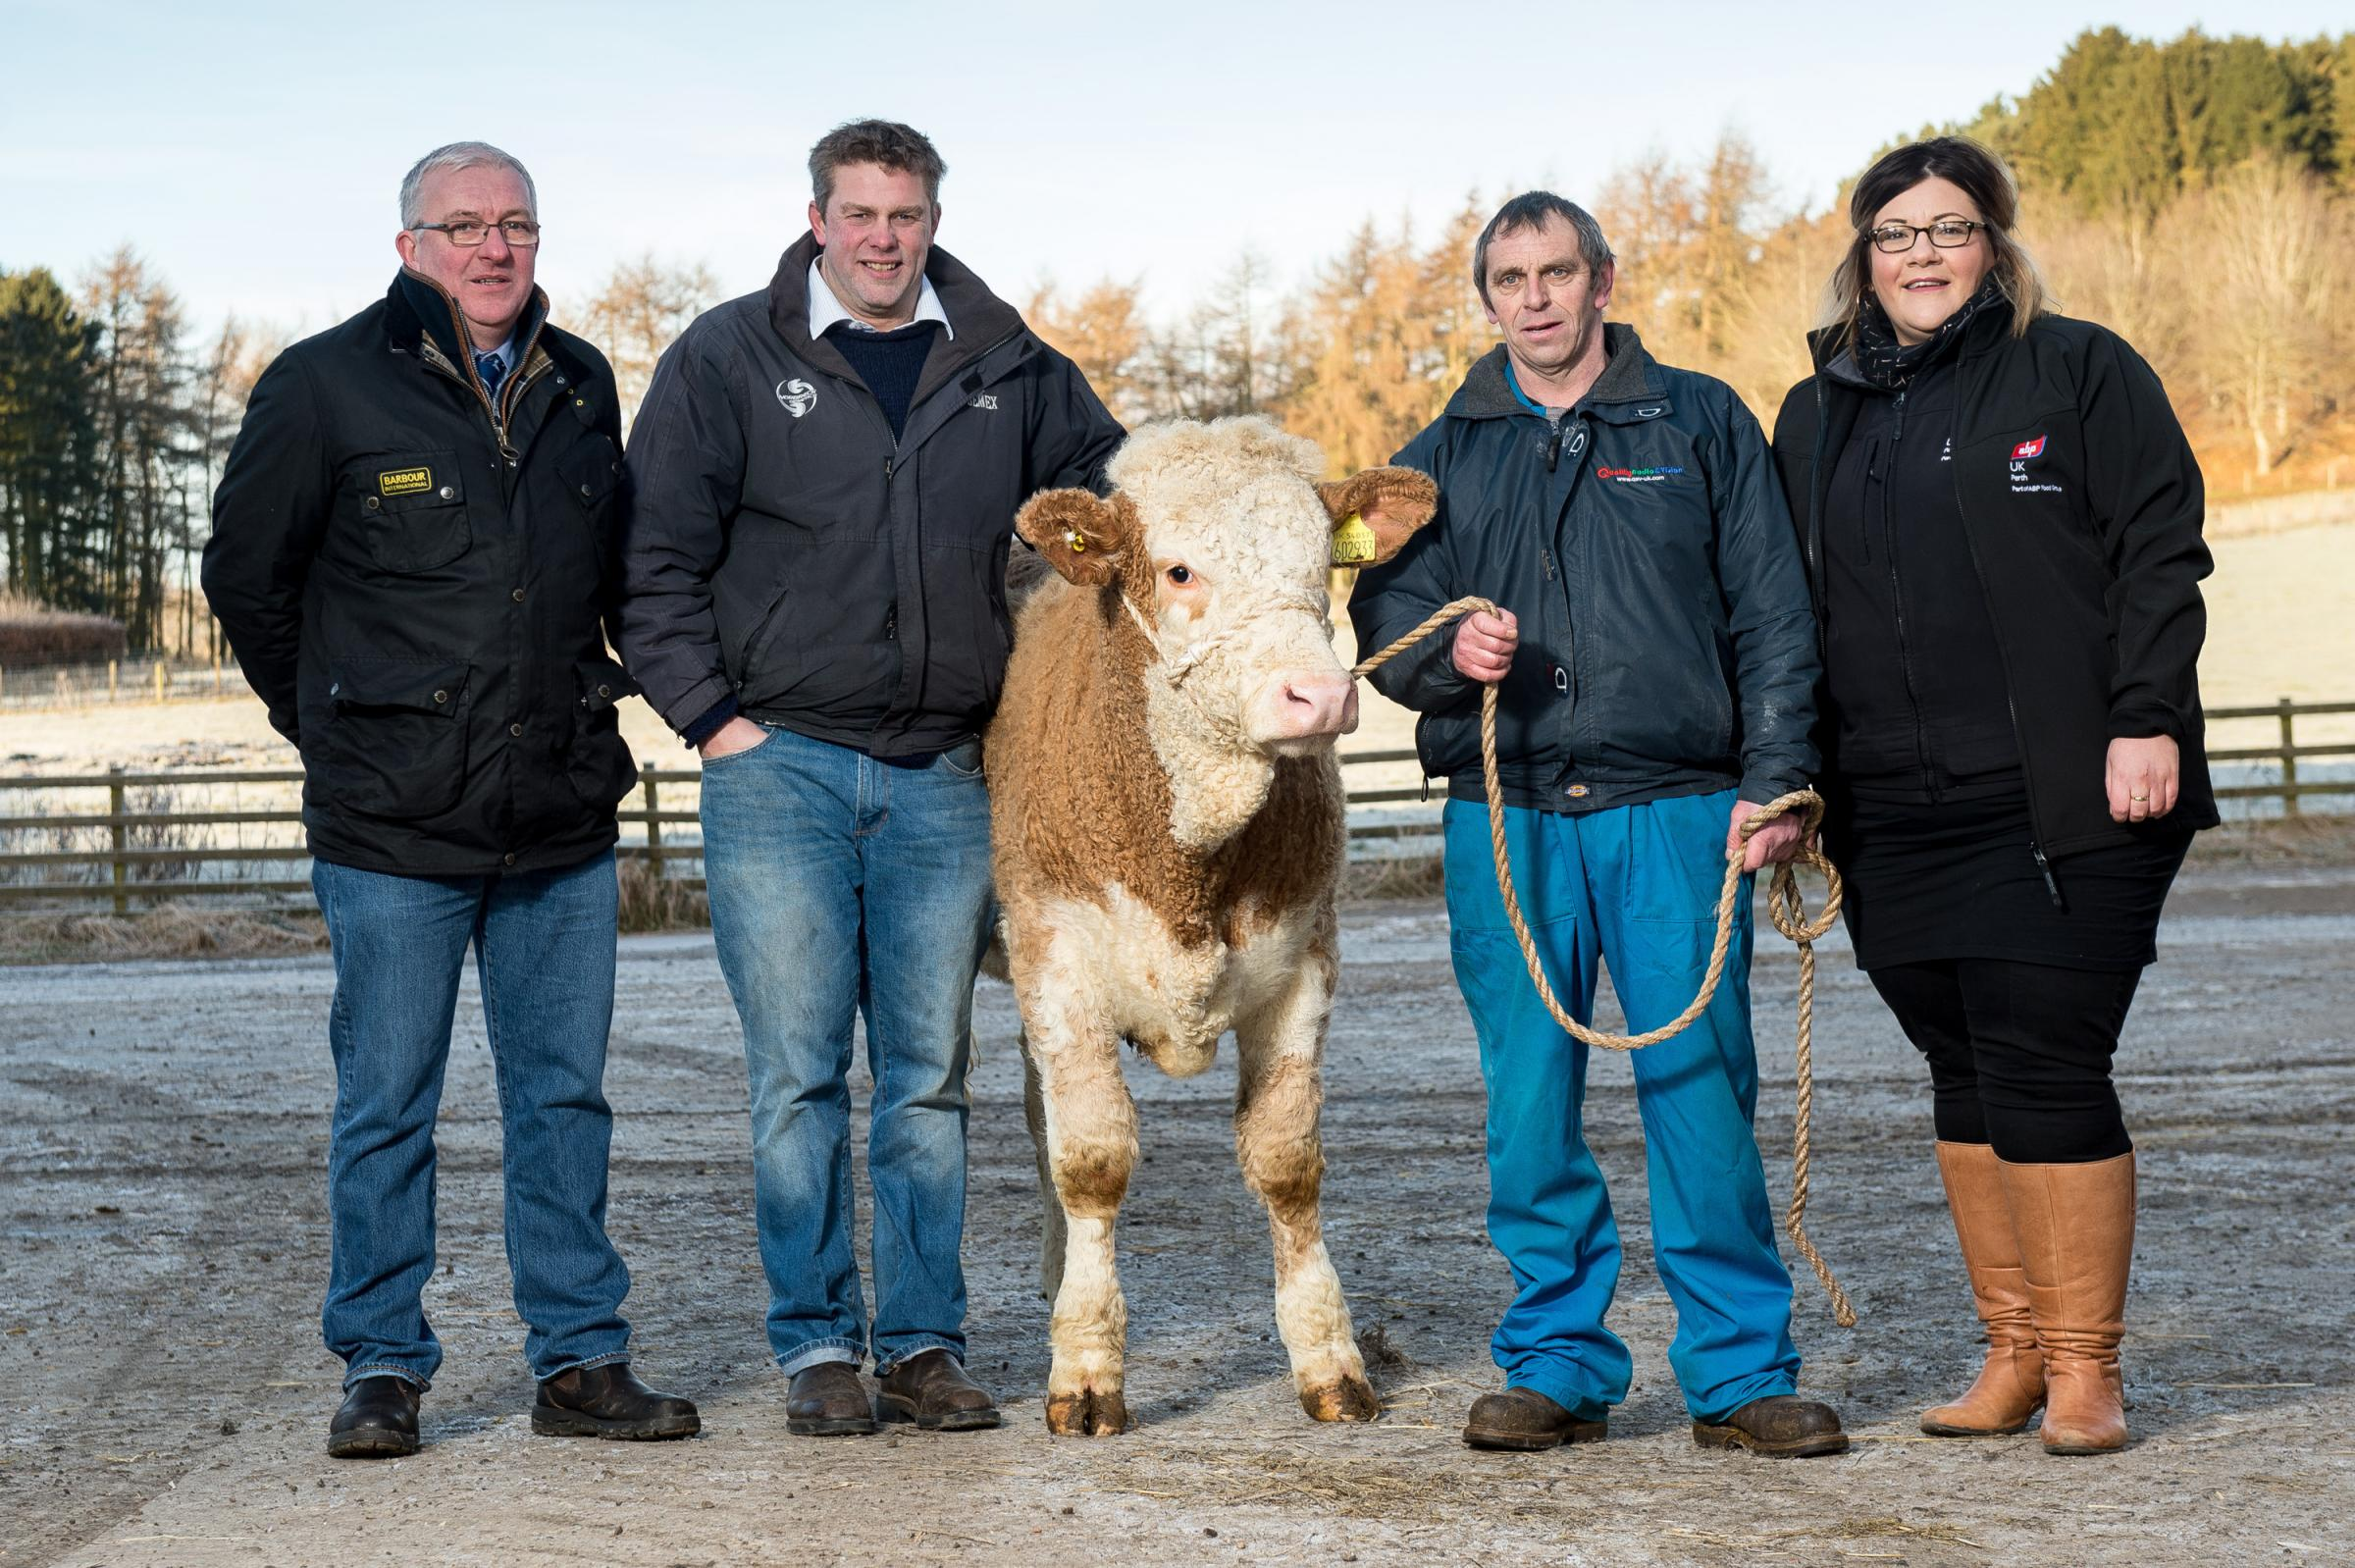 Neil Shand, chief executive of the Simmental Cattle Society far left to right; Adrian Ivory; Colin Fordyce, and Carlene Mackay, with the heifer Strathisla Ingrid's Geraldine which will be auctioned off to raise funds for the James Fordyce Fund